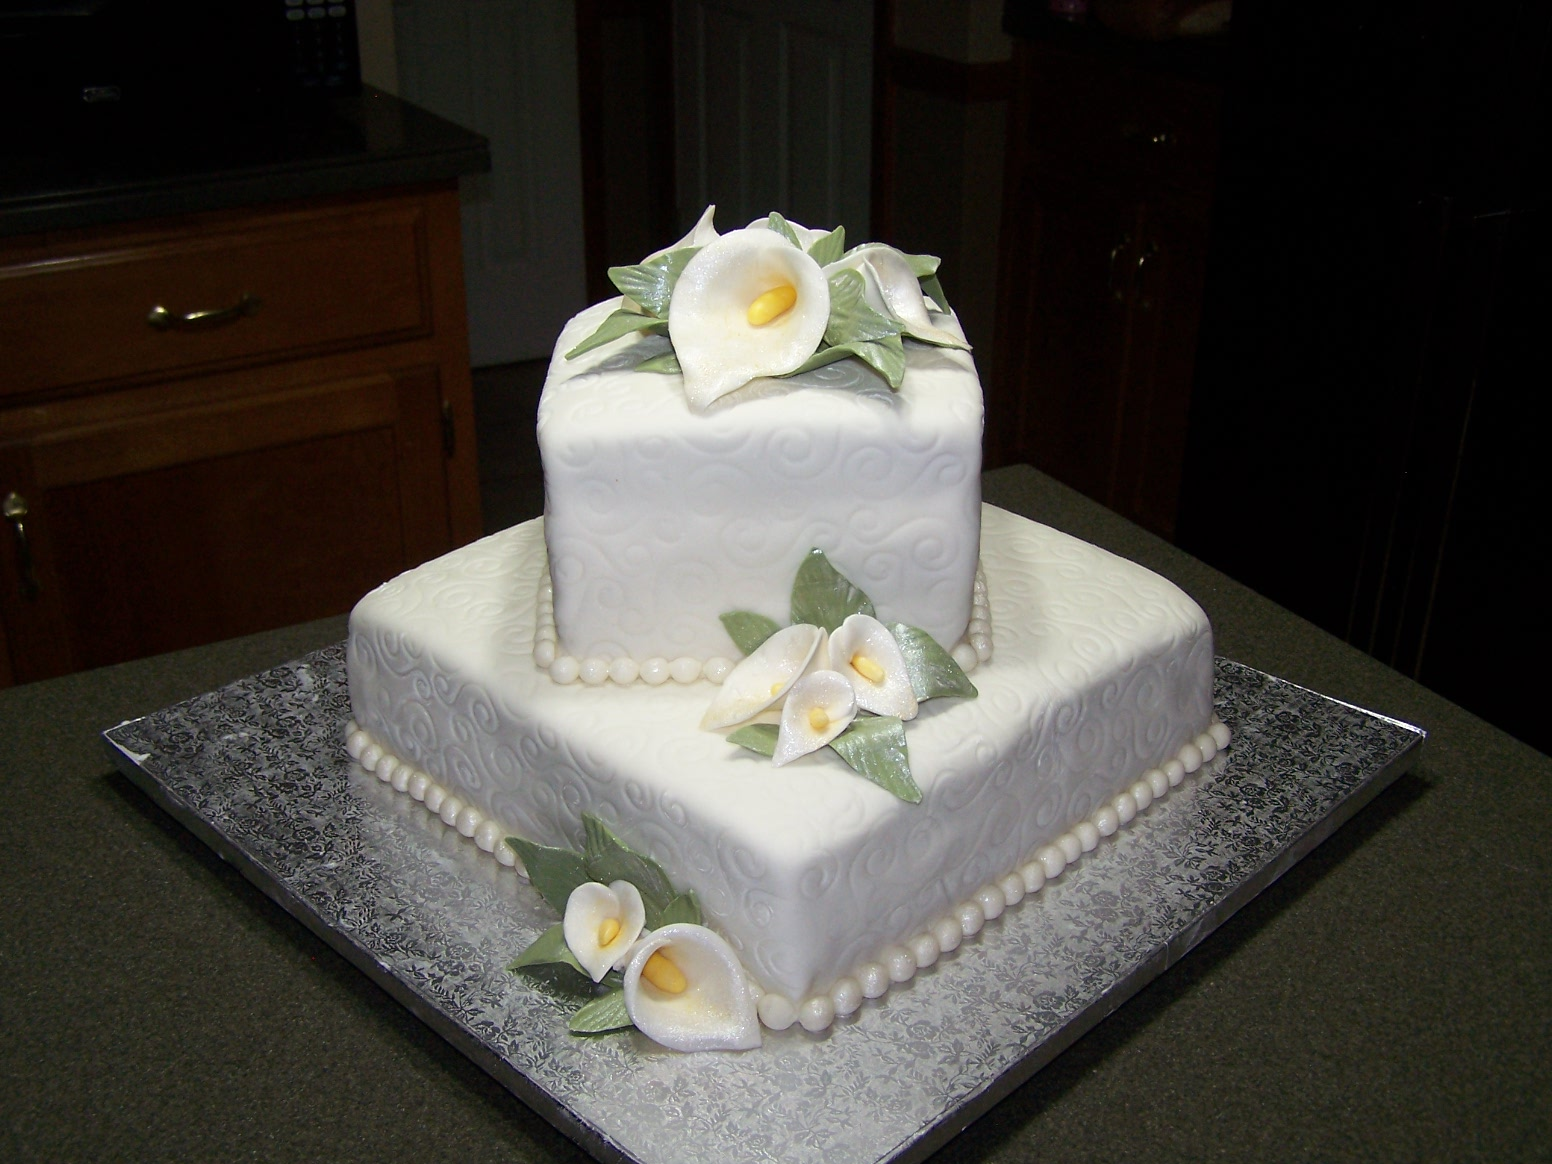 learning to fly cakes and pastries small wedding cakes for great